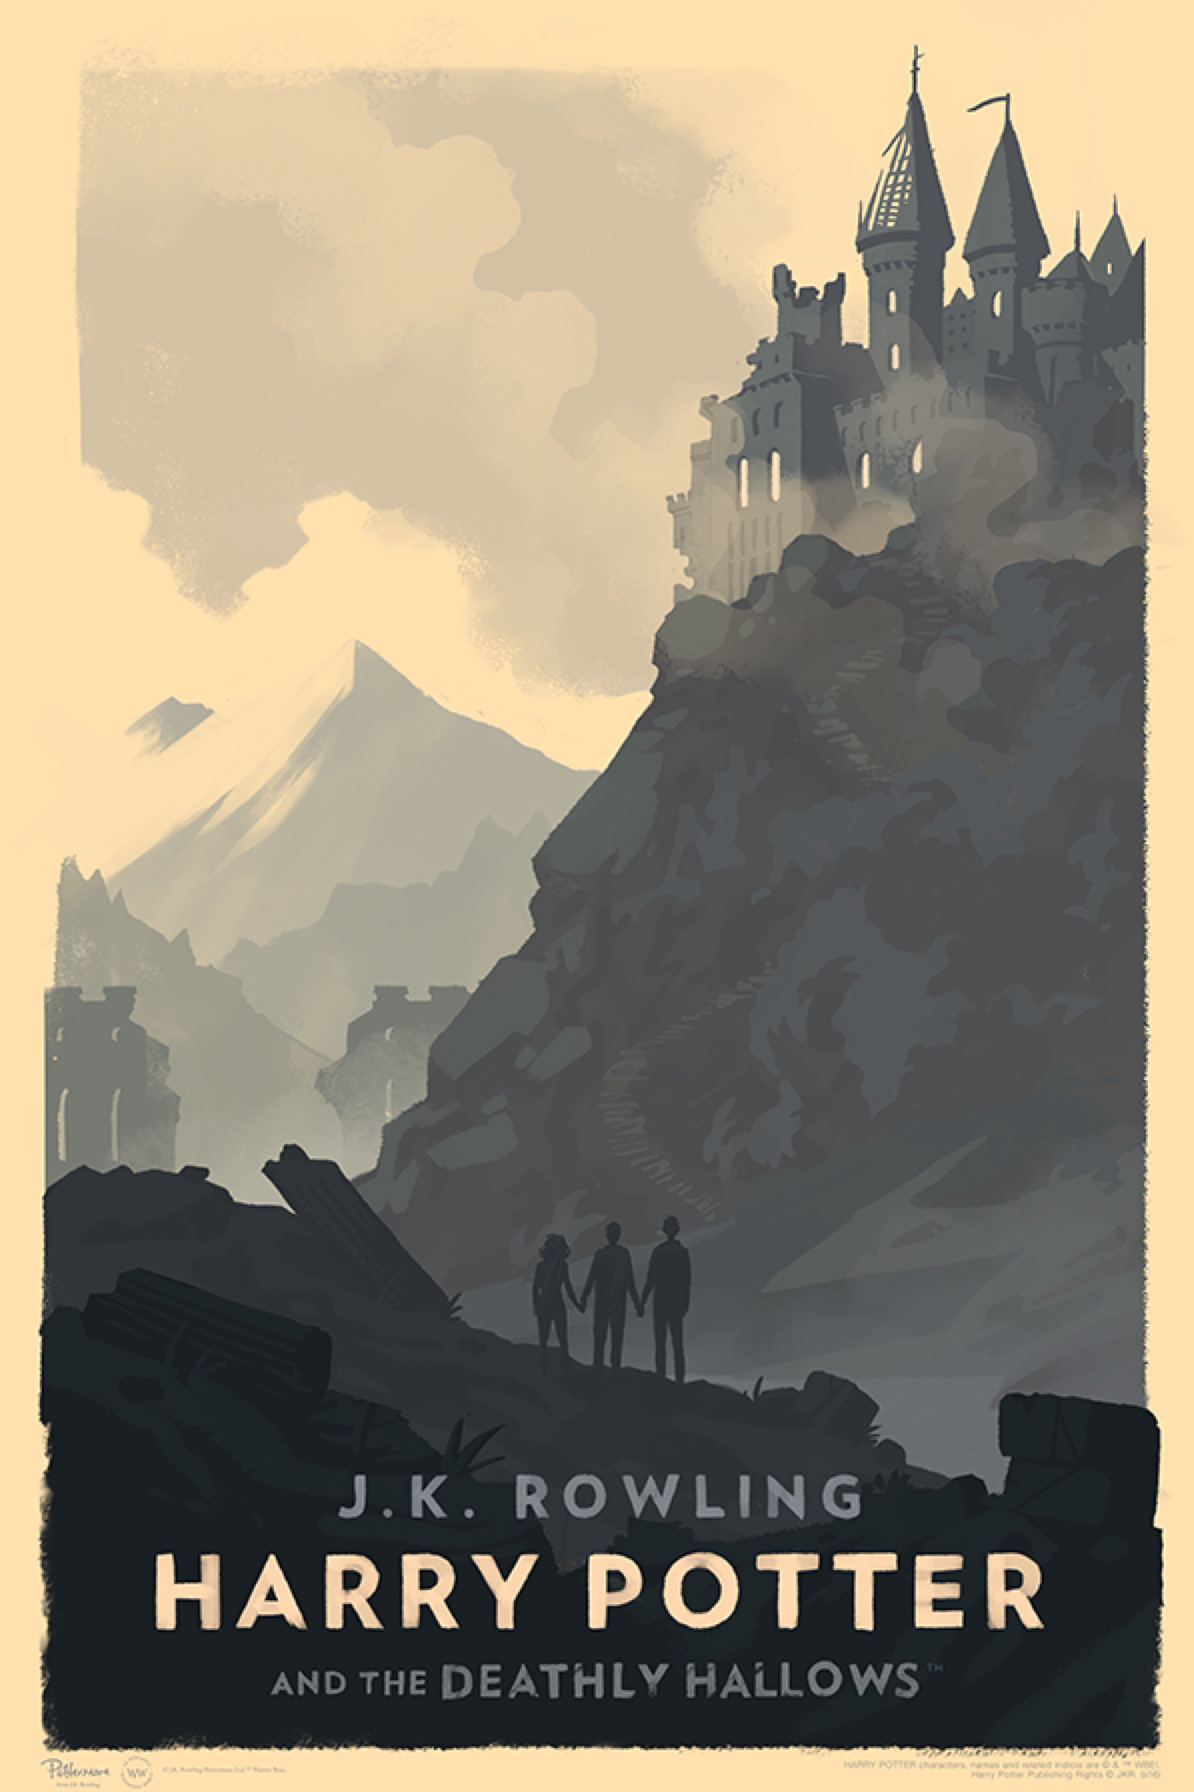 'Deathly Hallows' Olly Moss Hogwarts poster